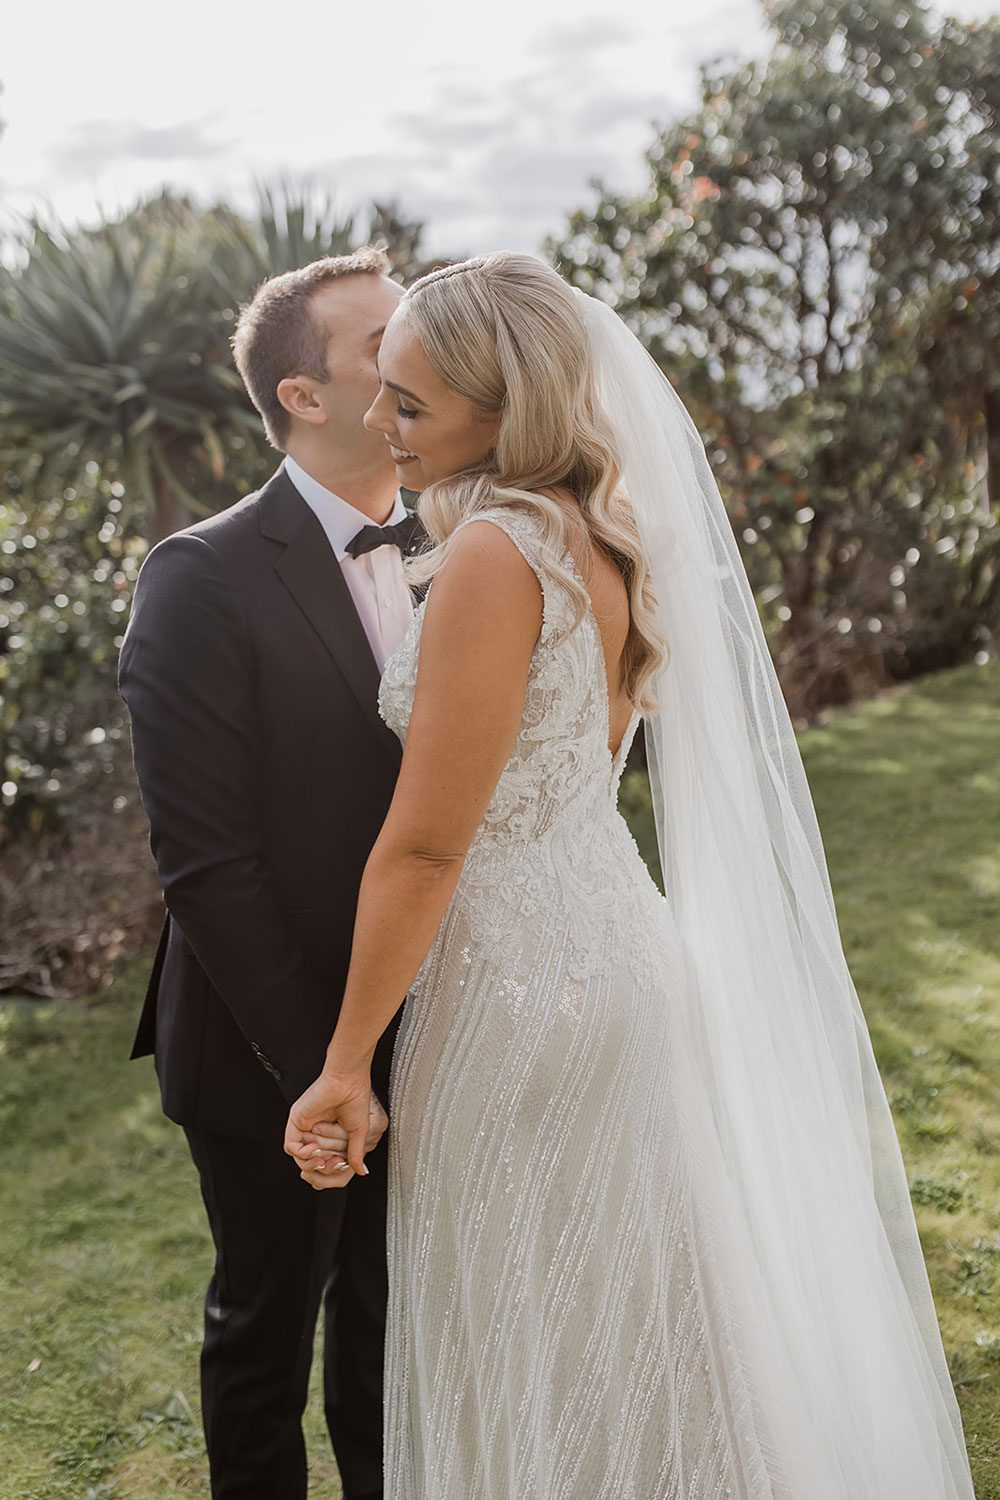 Bride wearing bespoke fitted V-neck gown in beaded lace with front split and sheer beaded overlay by Vinka bridal boutique NZ- with groom in garden kissing on cheek